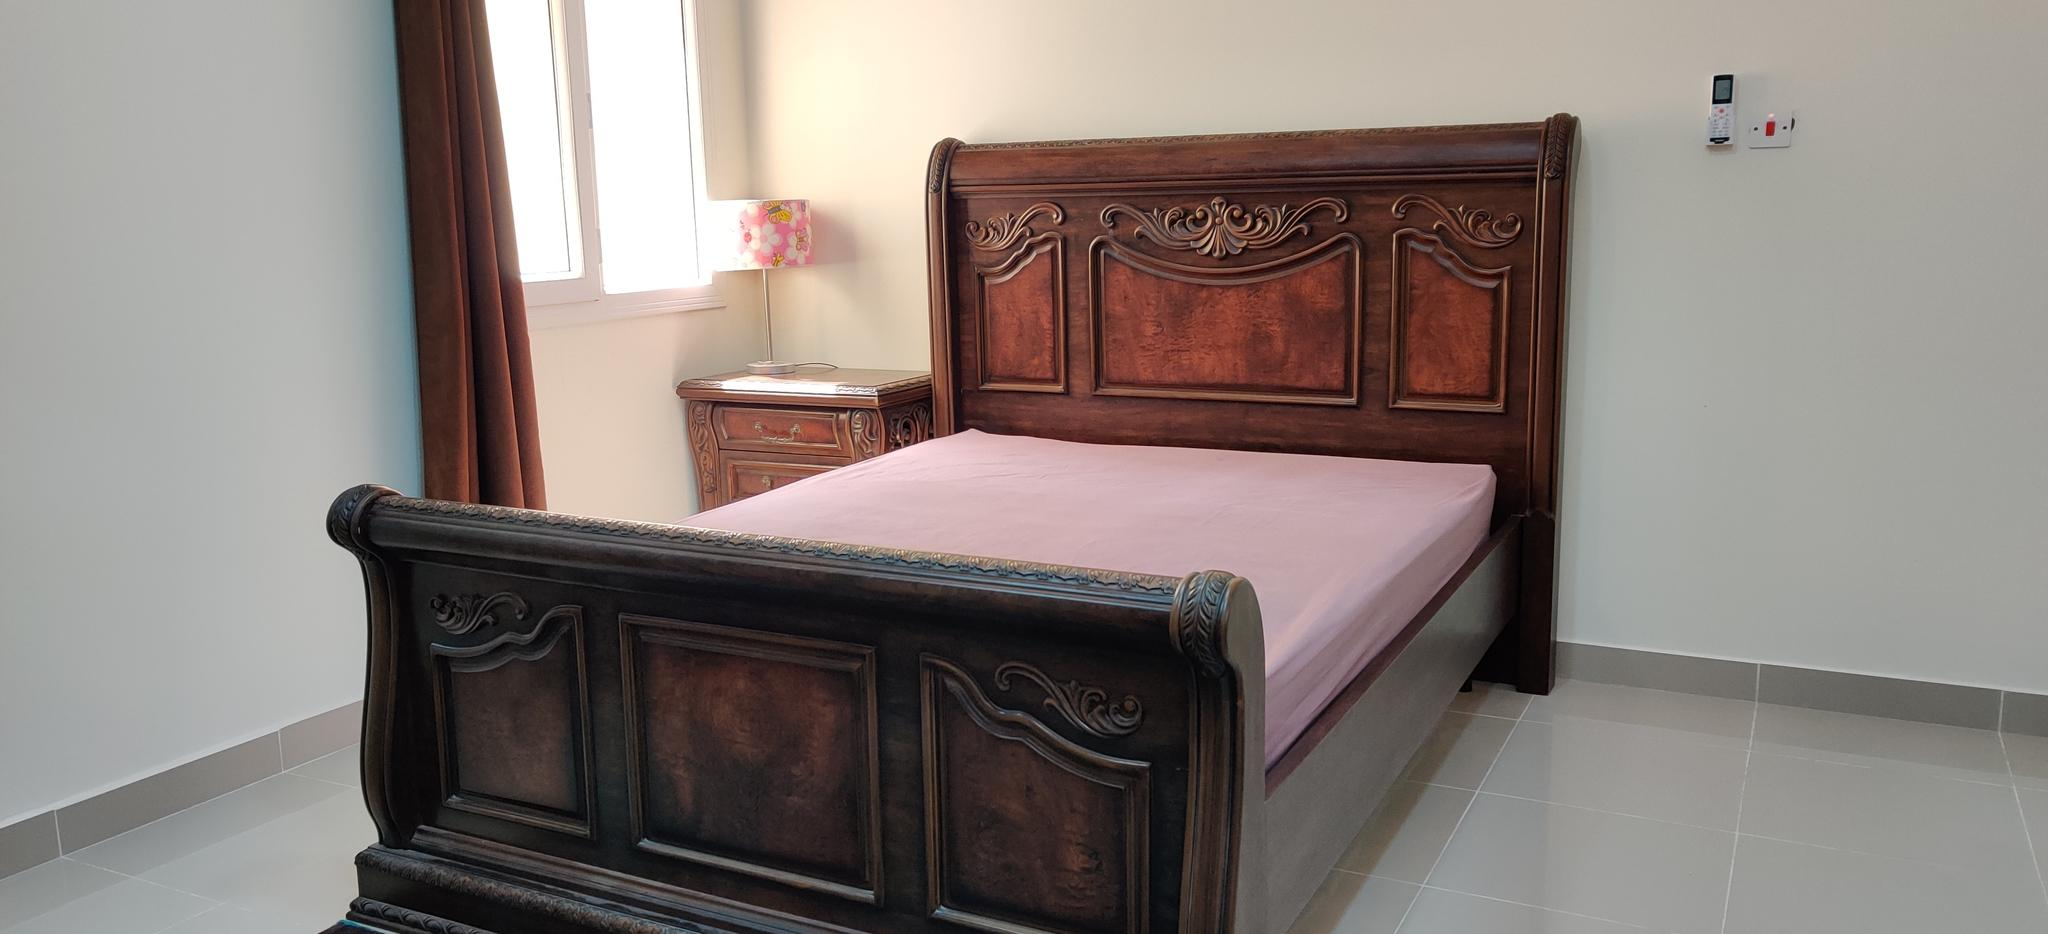 Arabesque single and double bedroom sets